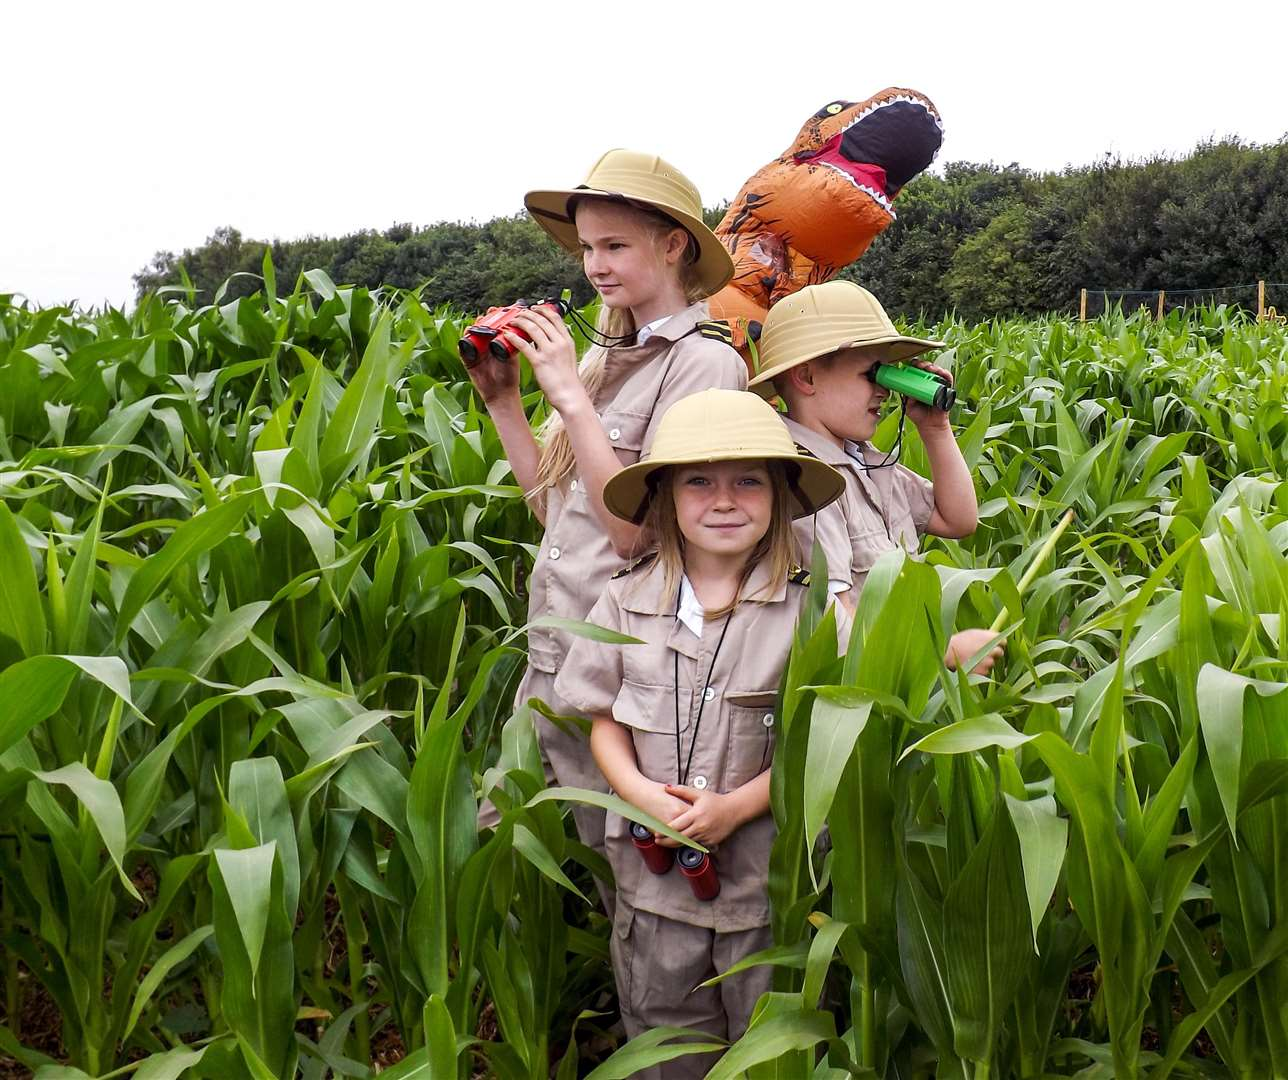 On the look out for dinosaurs in the Skylark maize maze: Annabell Wesley, 11, Owen Askew, 7 and Amelia Hathaway, 6. (3047085)